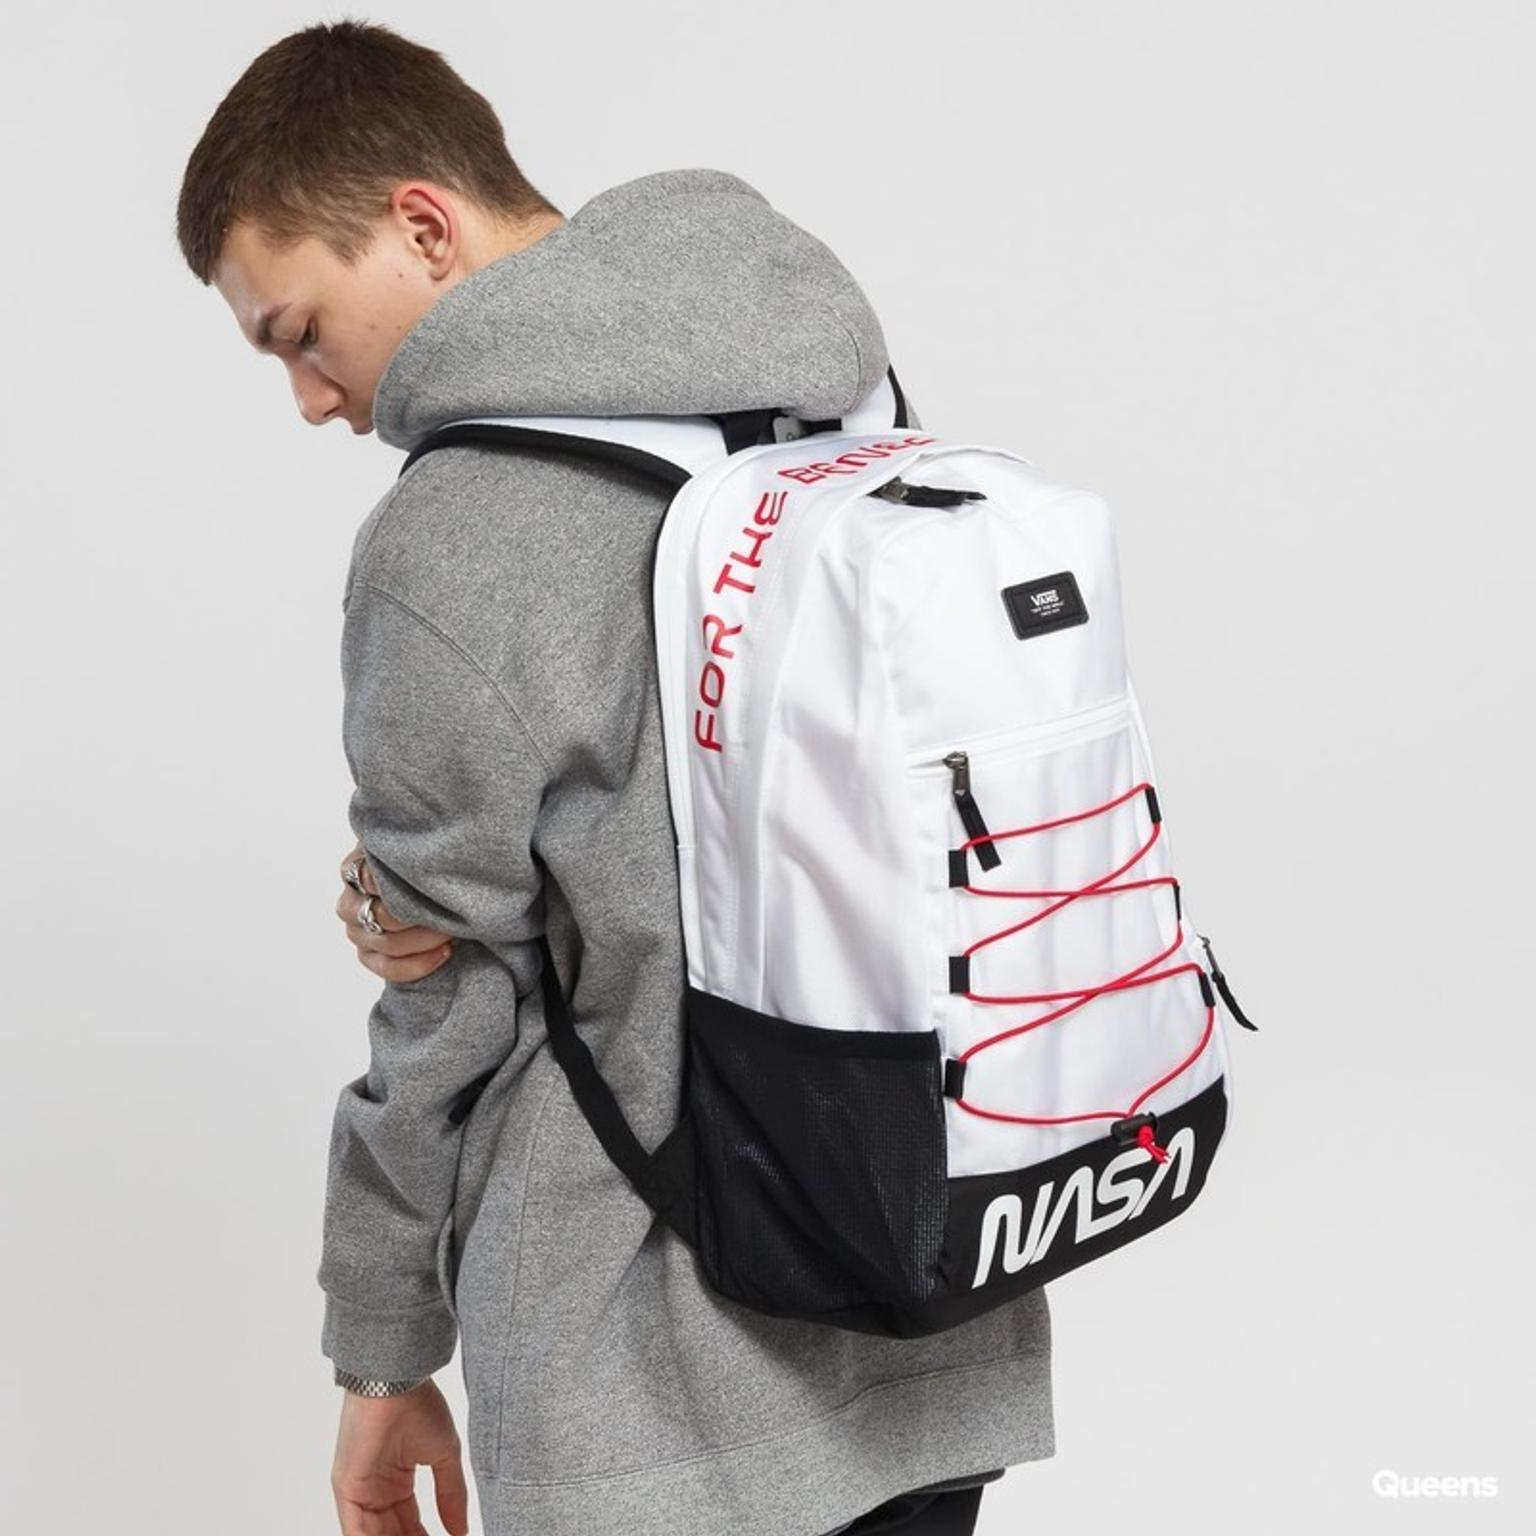 vans x nasa snag plus backpack